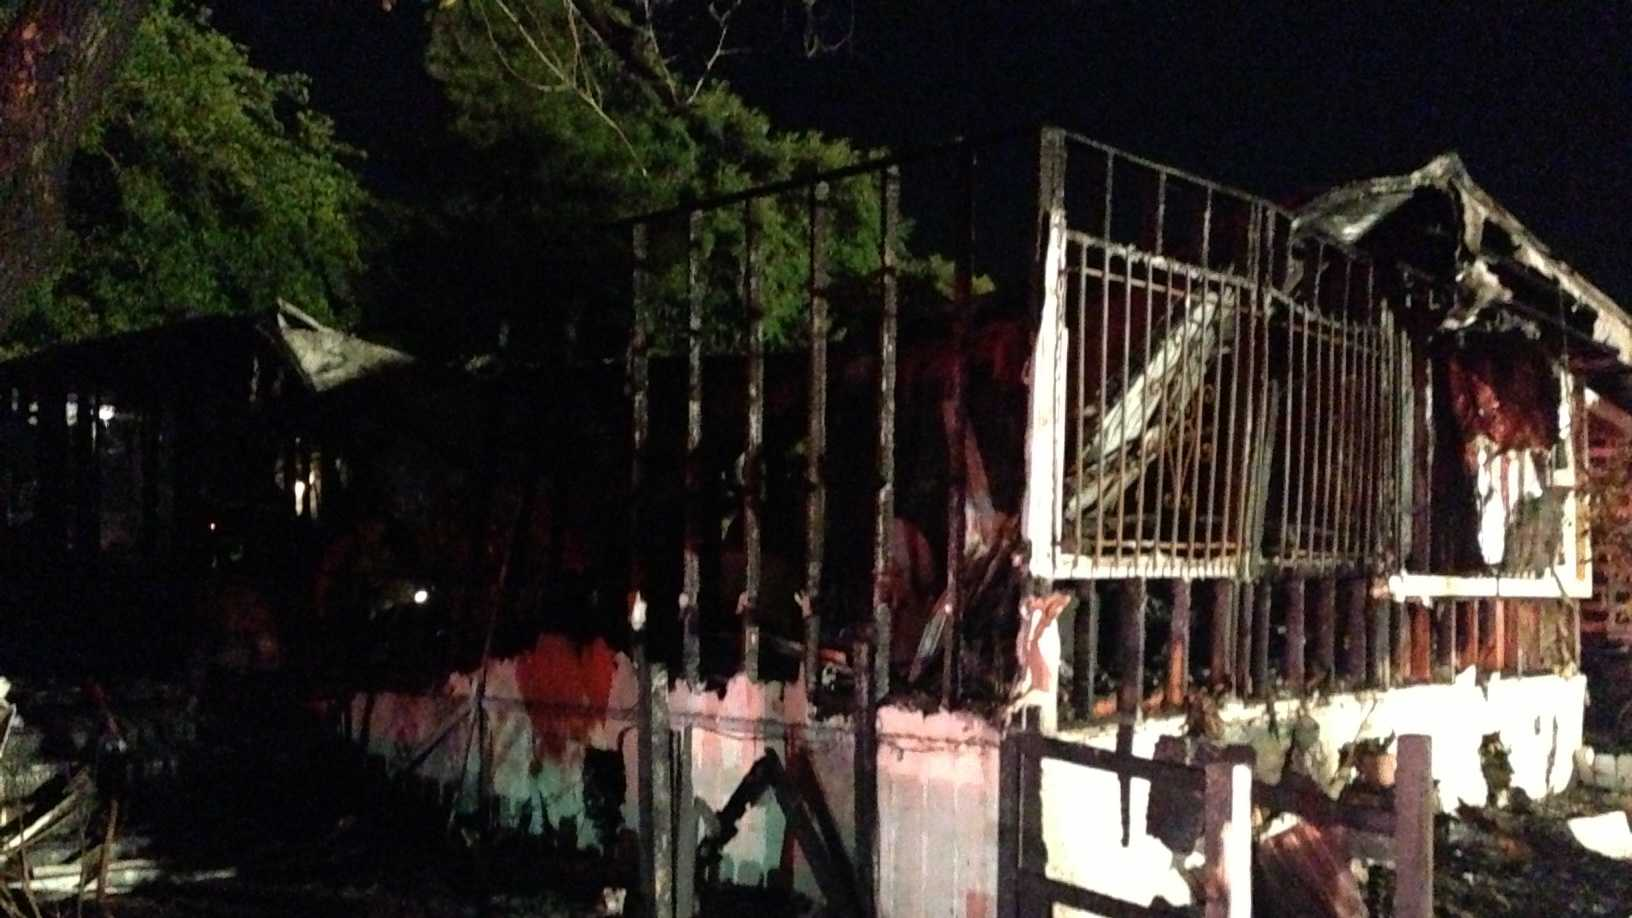 Two adults and three children escaped the blaze that threatened neighboring homes.